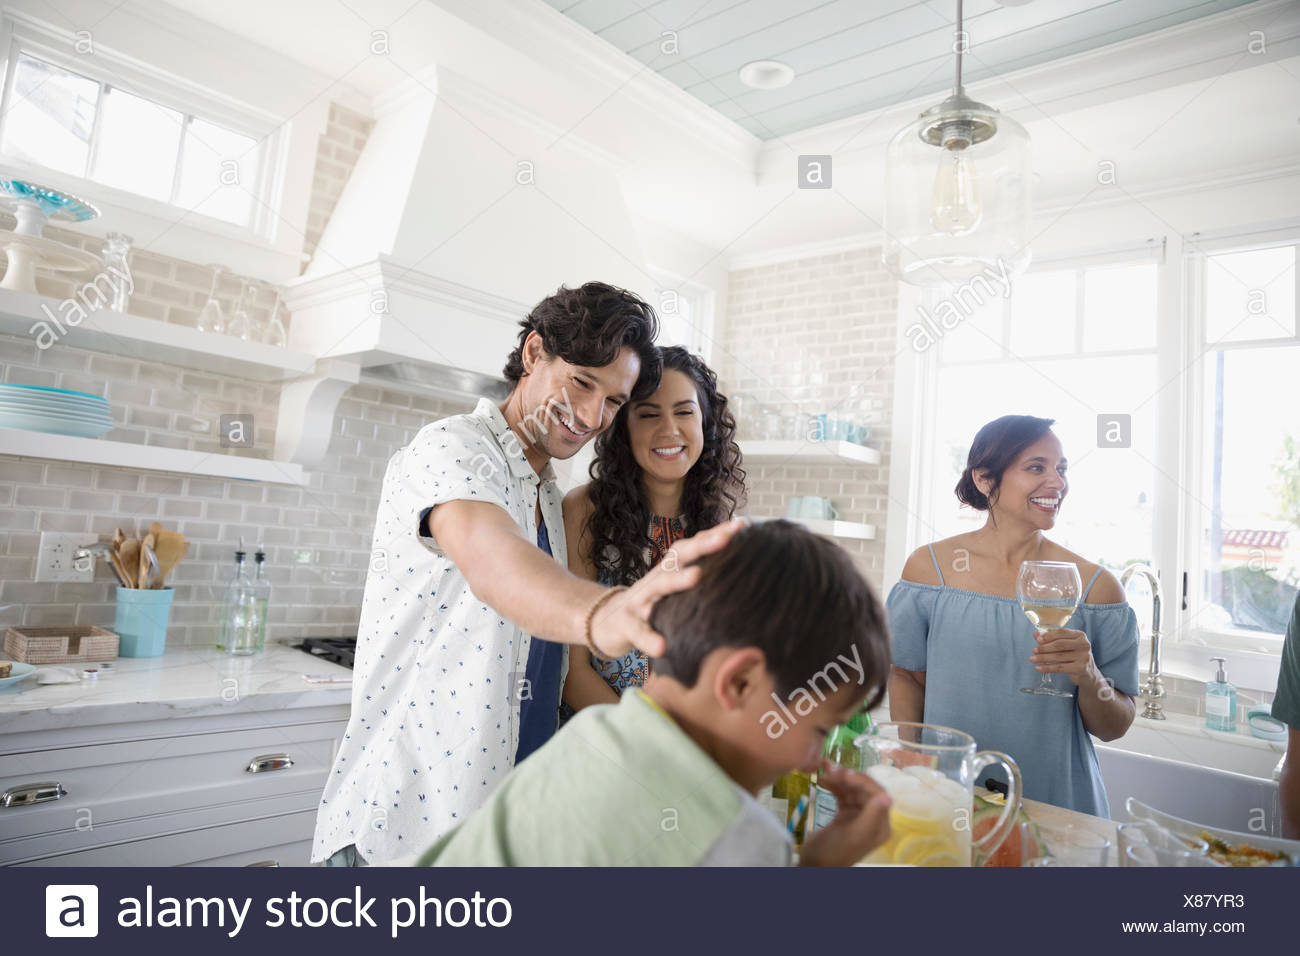 Family eating and drinking in beach house kitchen - Stock Image